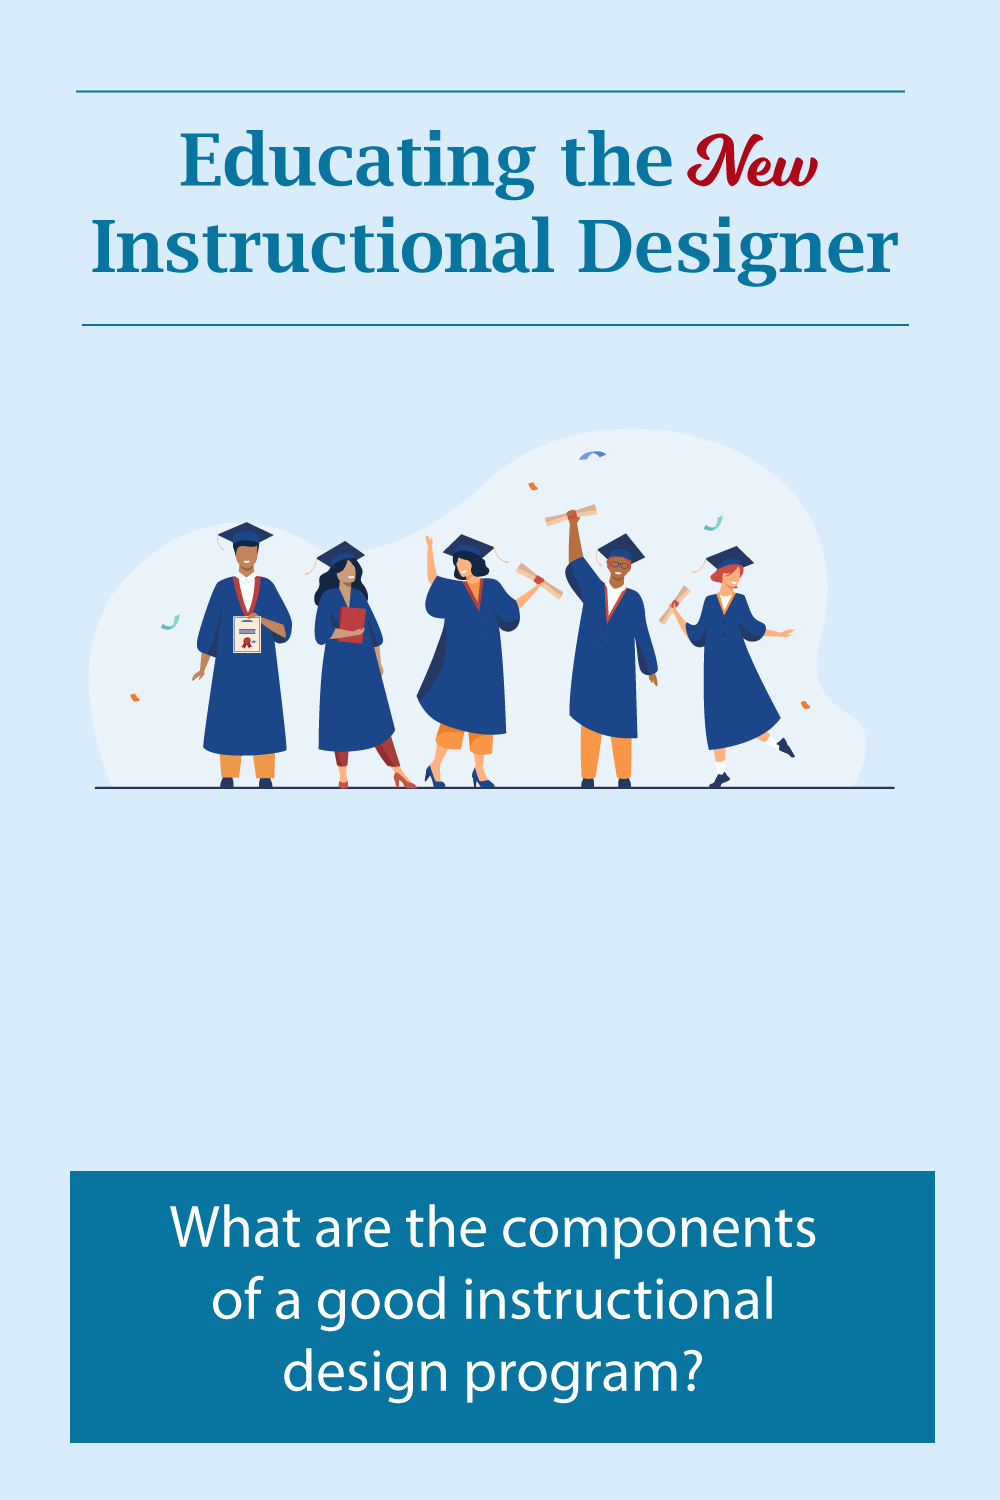 ELC 067: Educating the New Instructional Designer